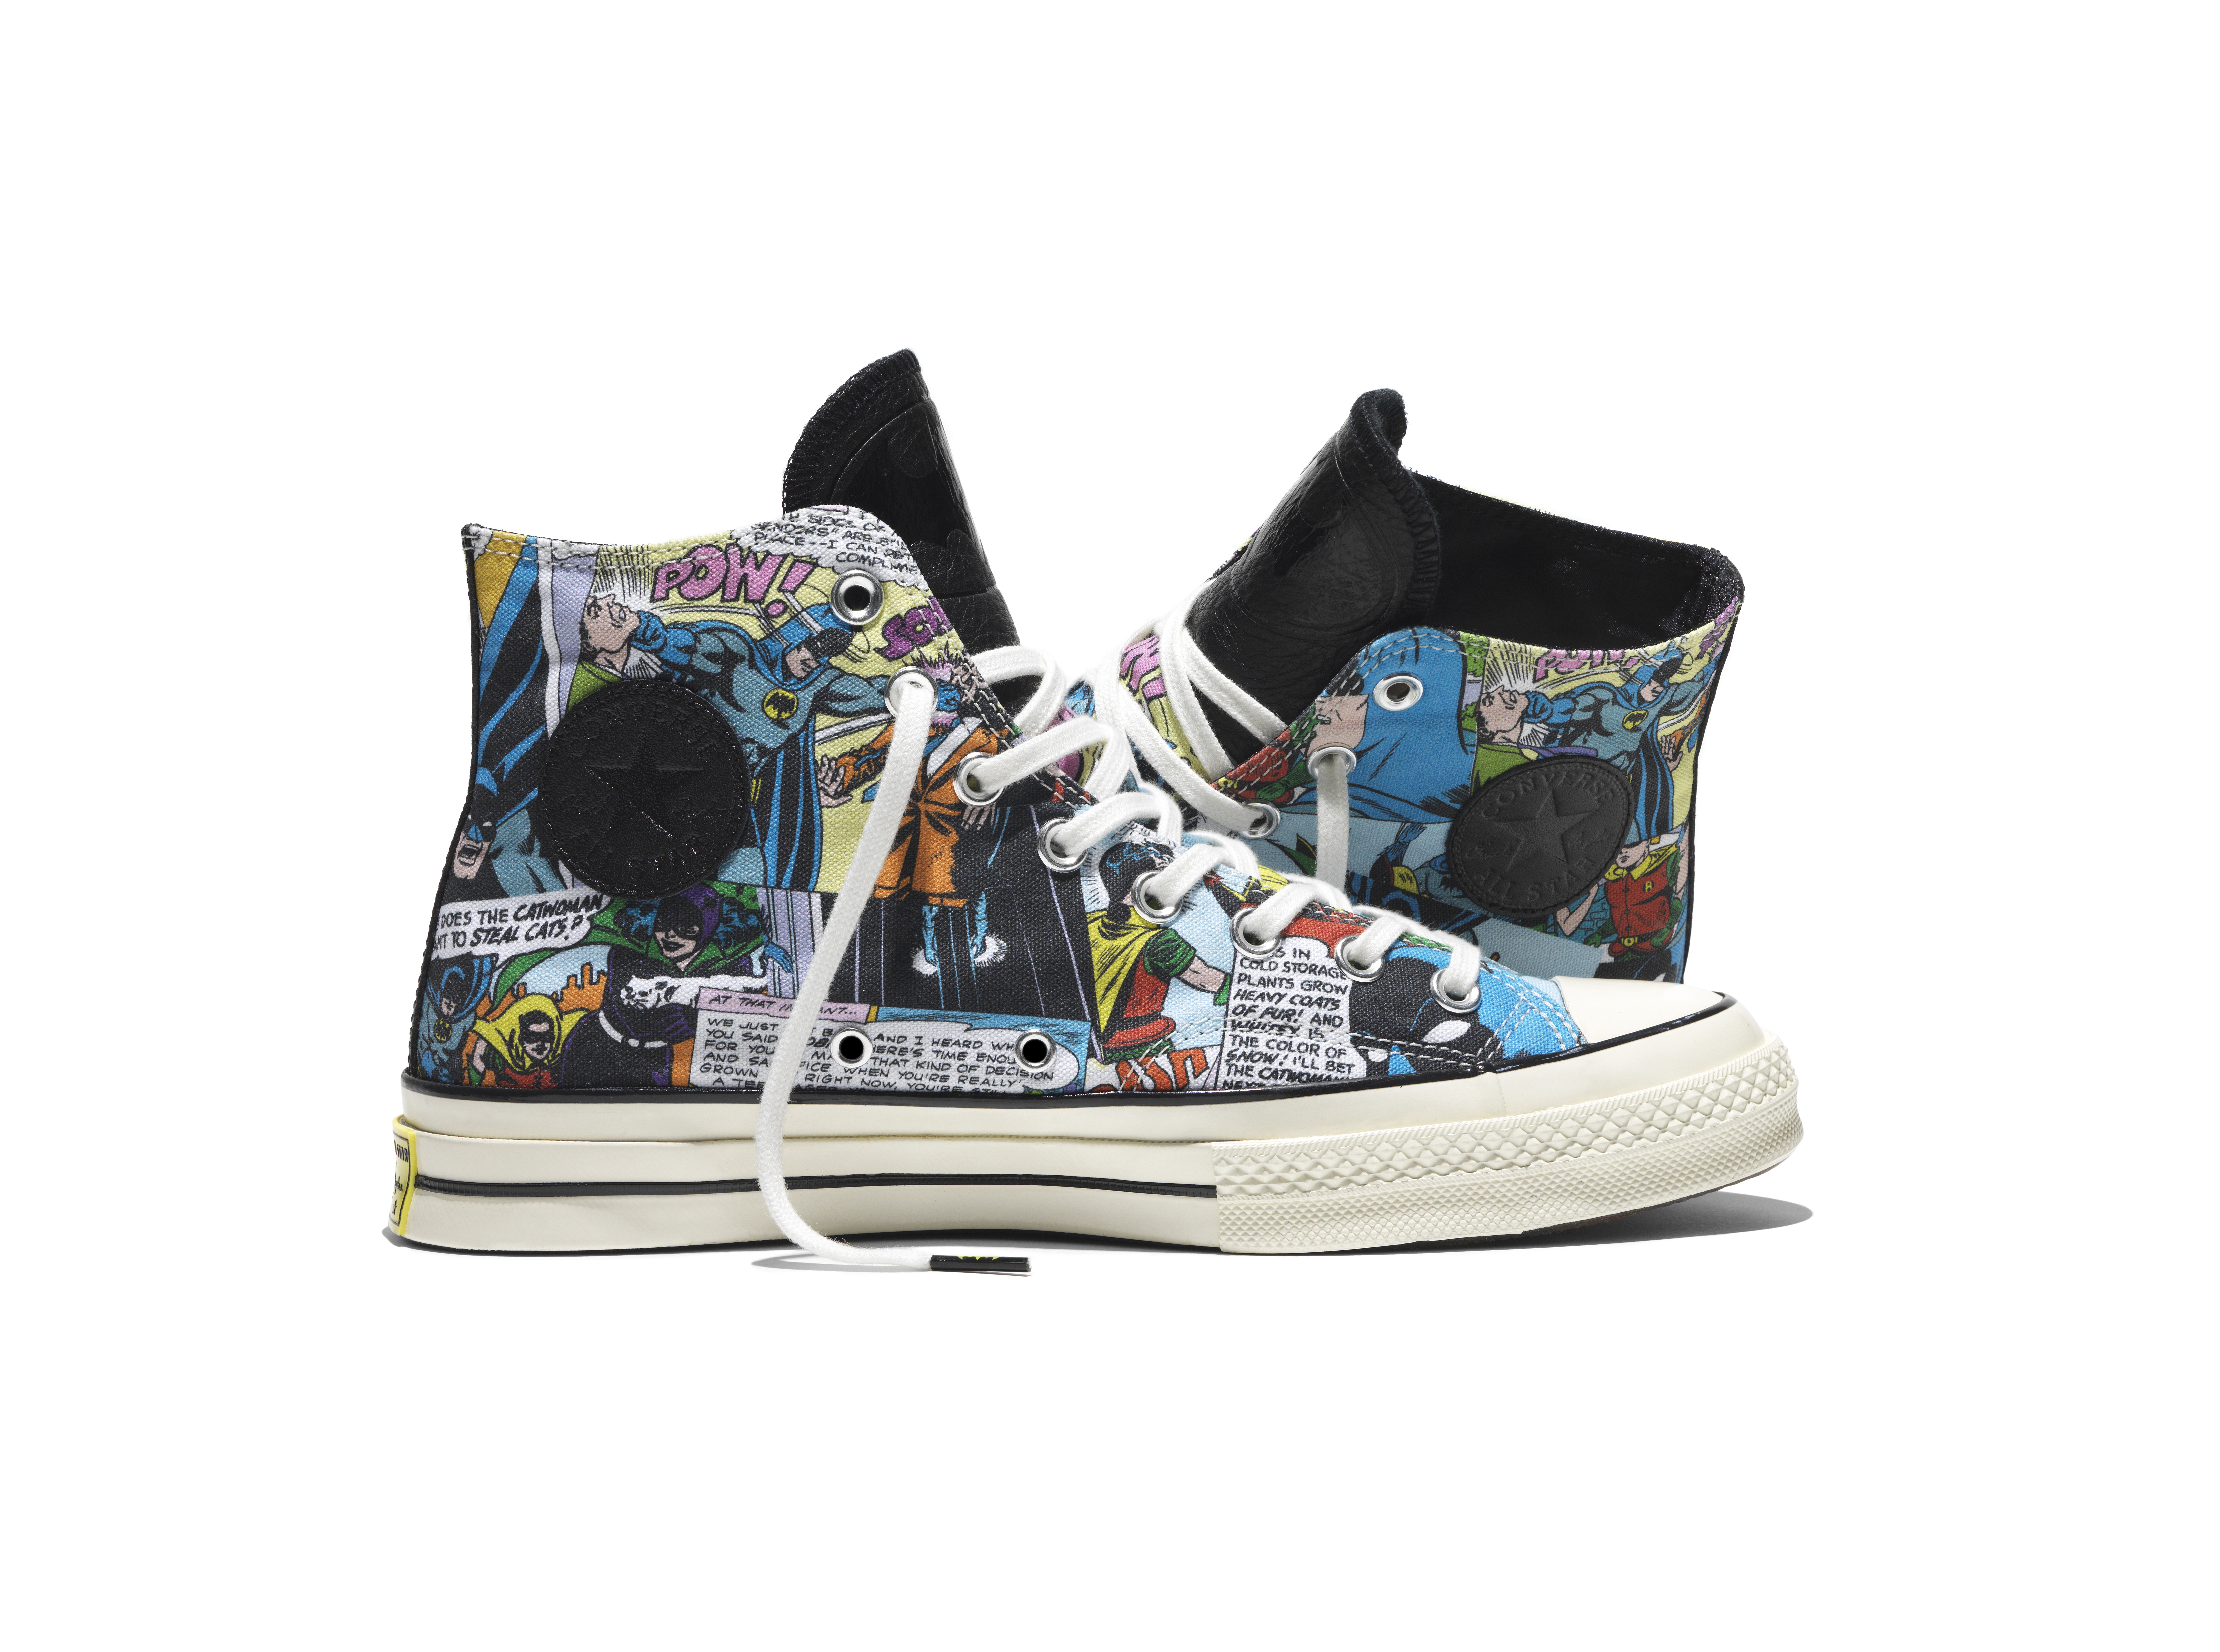 Converse and Warner Bros. Launch Chuck Taylor All Star '70